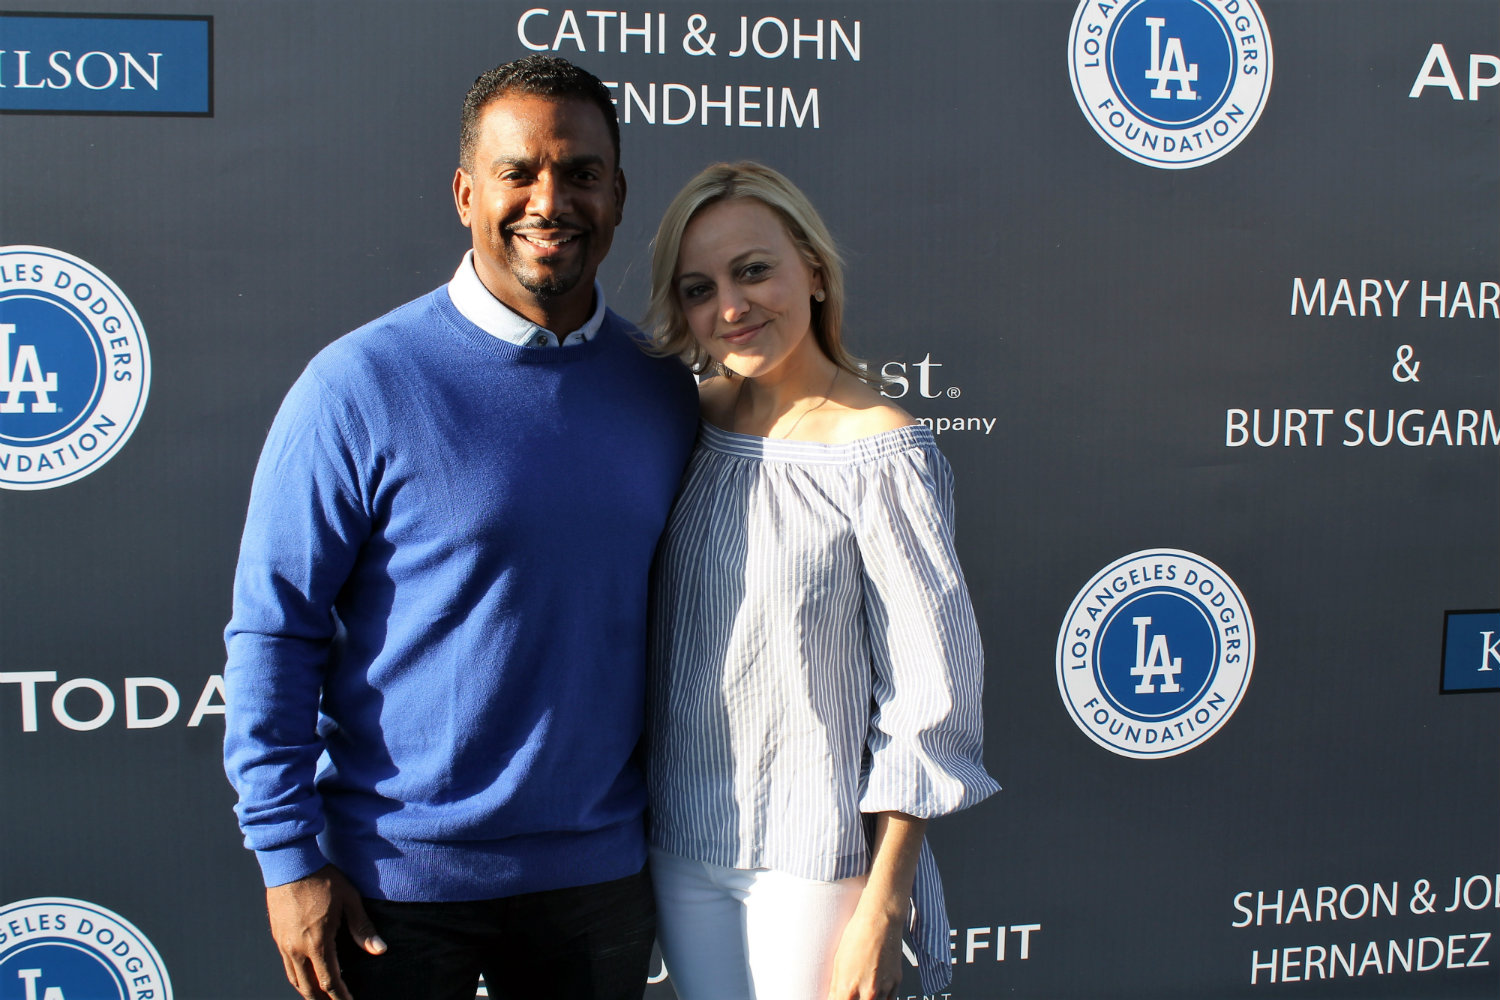 Actor Alfonso Ribeiro make it down the blue carpet of the Dodgers 3rd Annual Blue Diamond Gala at Dodger Stadium. Photo by Dennis J. Freeman/News4usonline.com